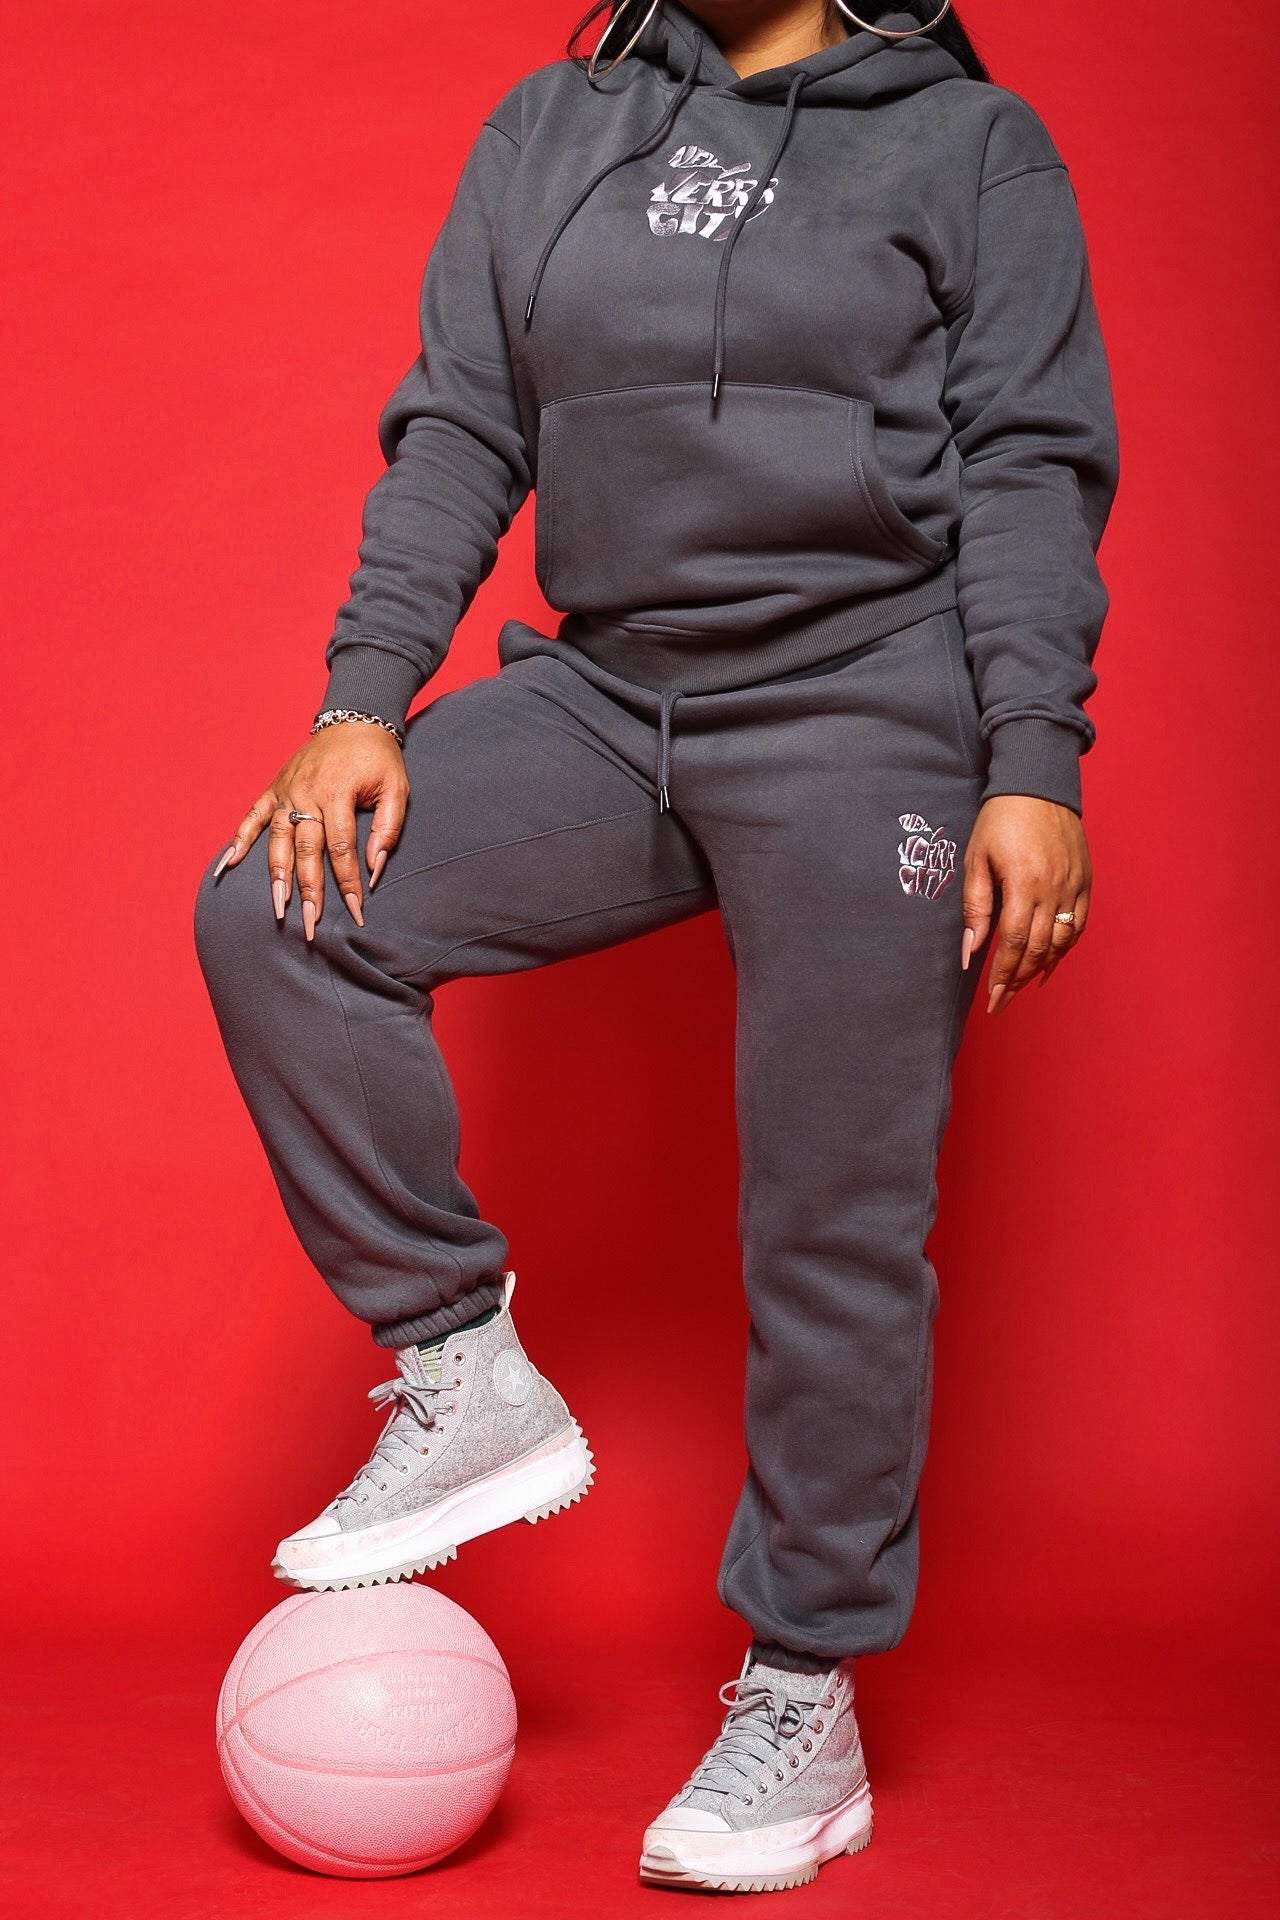 """NEW YERRR CITY"" JOGGER SWEATPANTS"